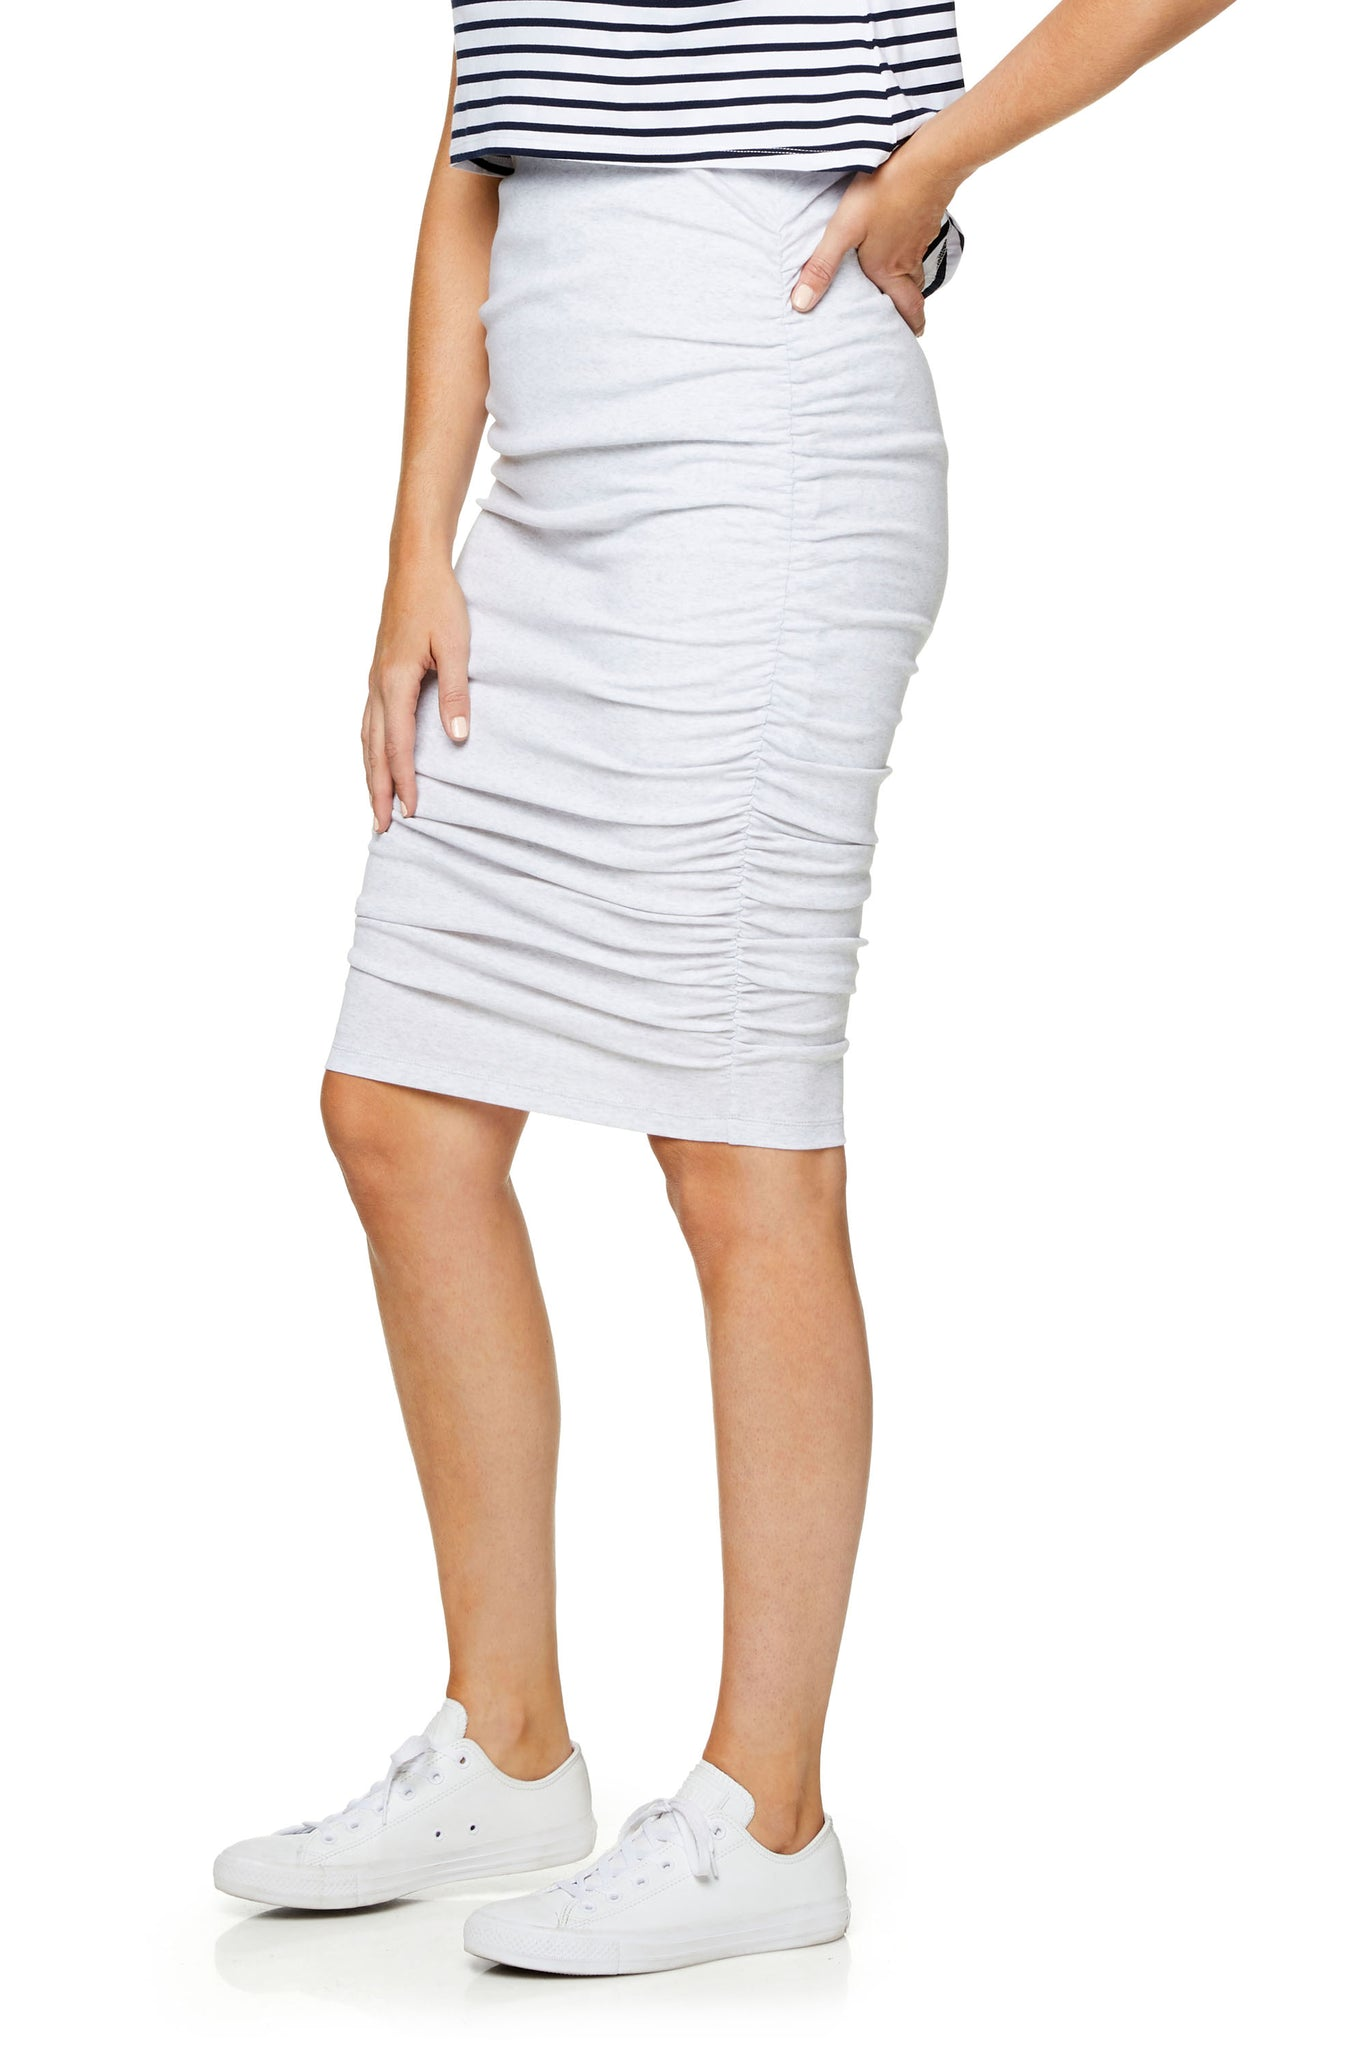 Body-con Maternity Skirt - 7